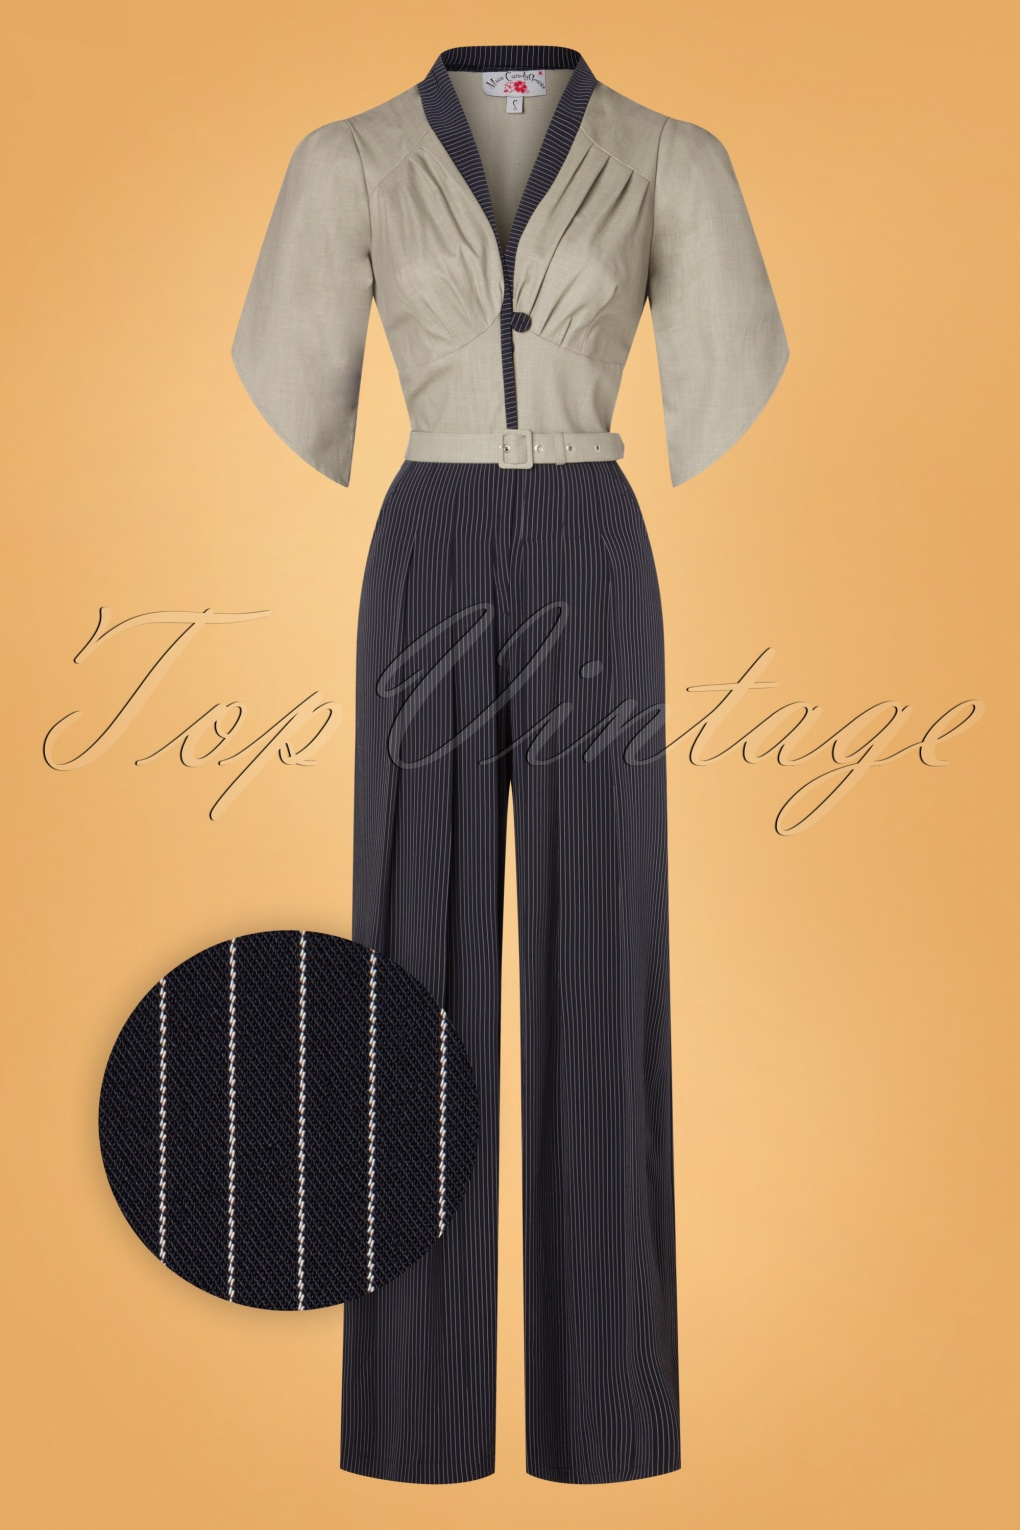 Vintage Overalls 1910s -1950s History & Shop Overalls 50s Ariadne Striped Jumpsuit in Navy and Greige £111.75 AT vintagedancer.com